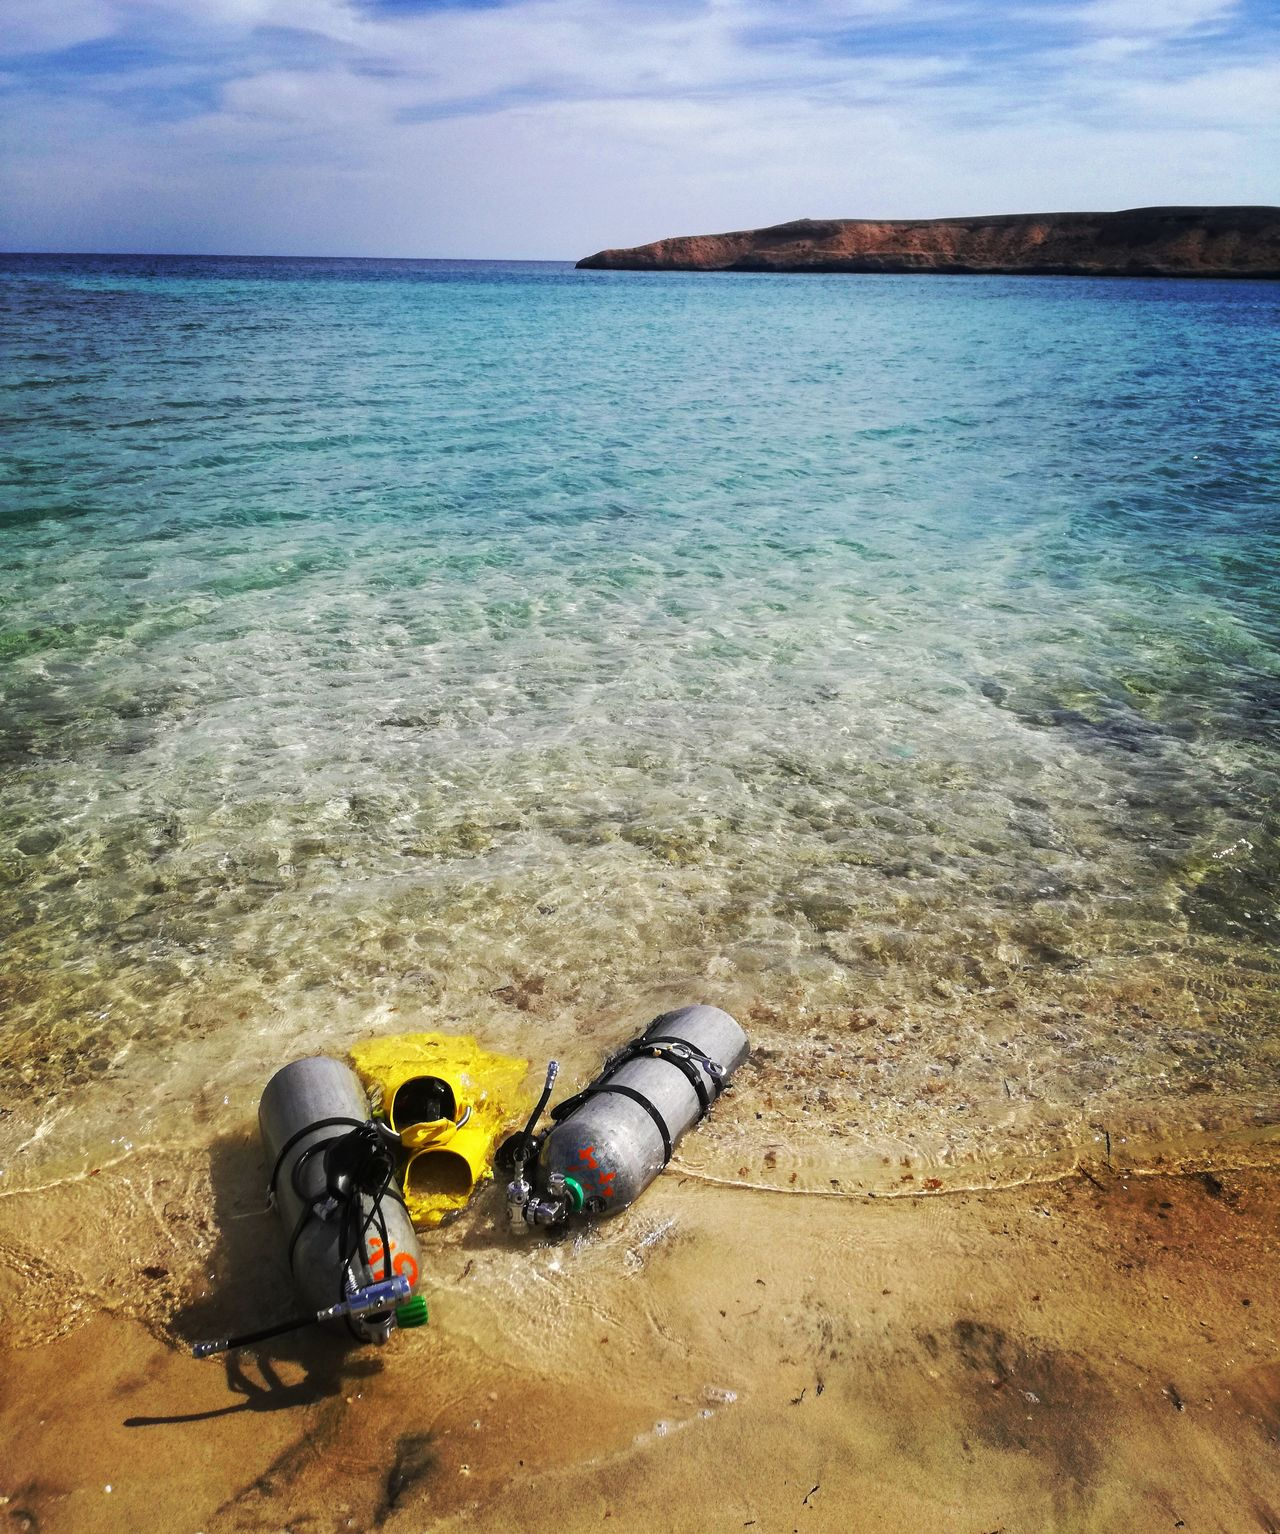 RedSea Sea Beach Sand Water Scuba Diving Sidemountdiving Sidemount Beauty In Nature UnderSea Scubadiving Egypt Egypt Marsa Alam Dugonghunt Nurkowanie Redsea Diving Nature Outdoors One Person Live For The Story